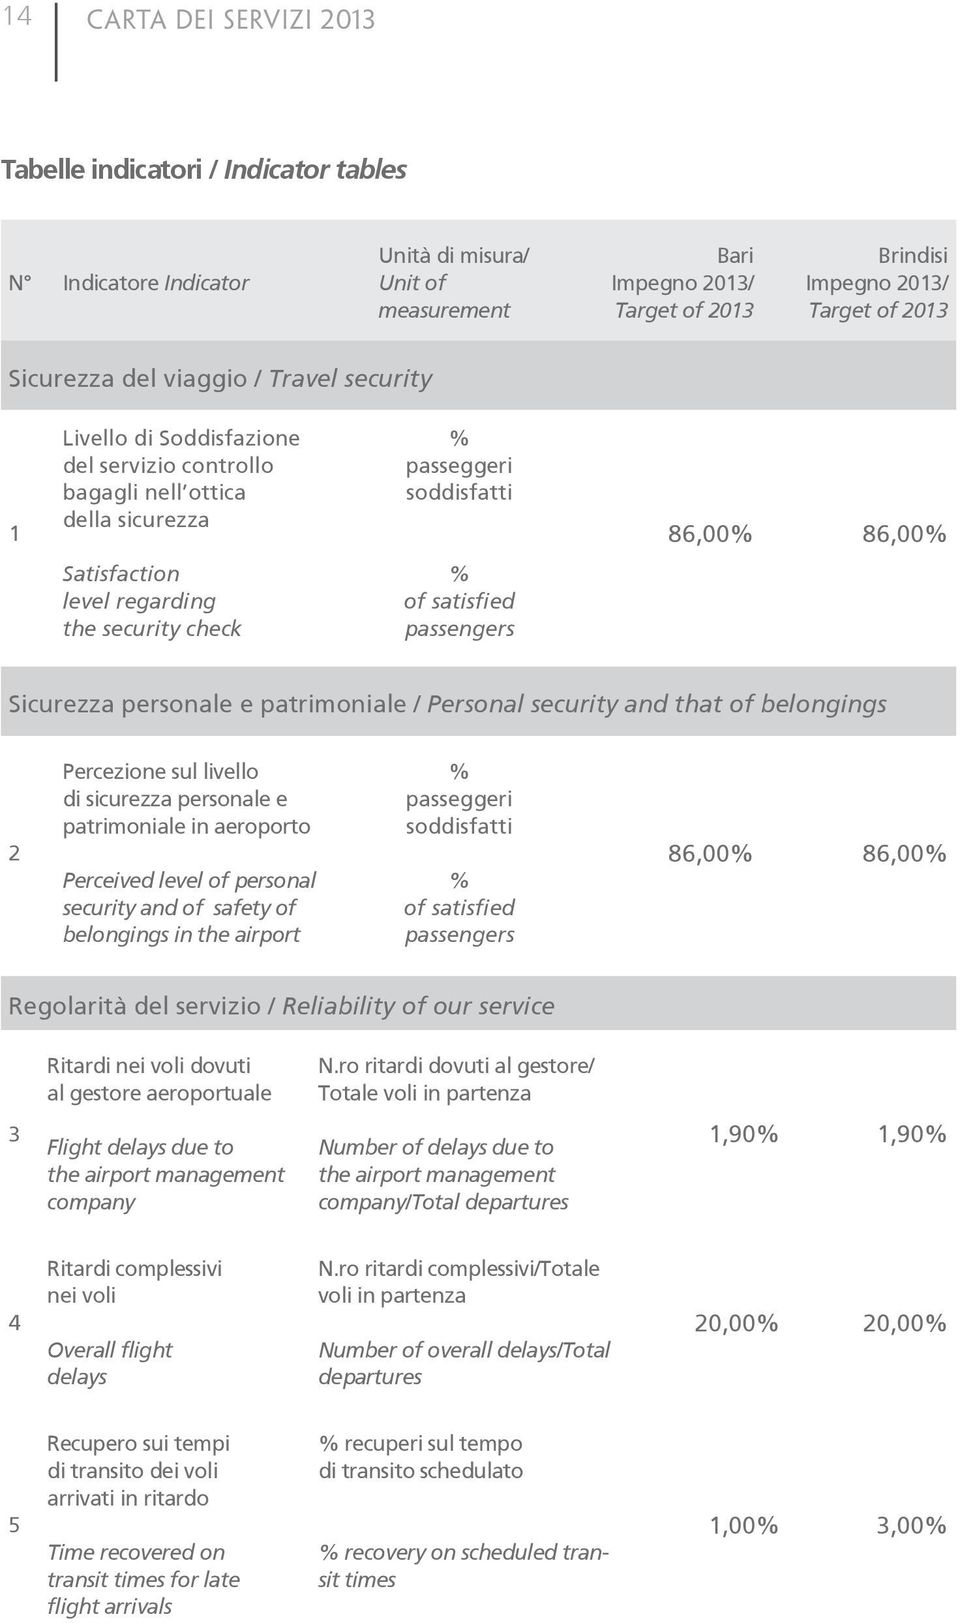 security check % of satisfied passengers Sicurezza personale e patrimoniale / Personal security and that of belongings 2 Percezione sul livello di sicurezza personale e patrimoniale in aeroporto